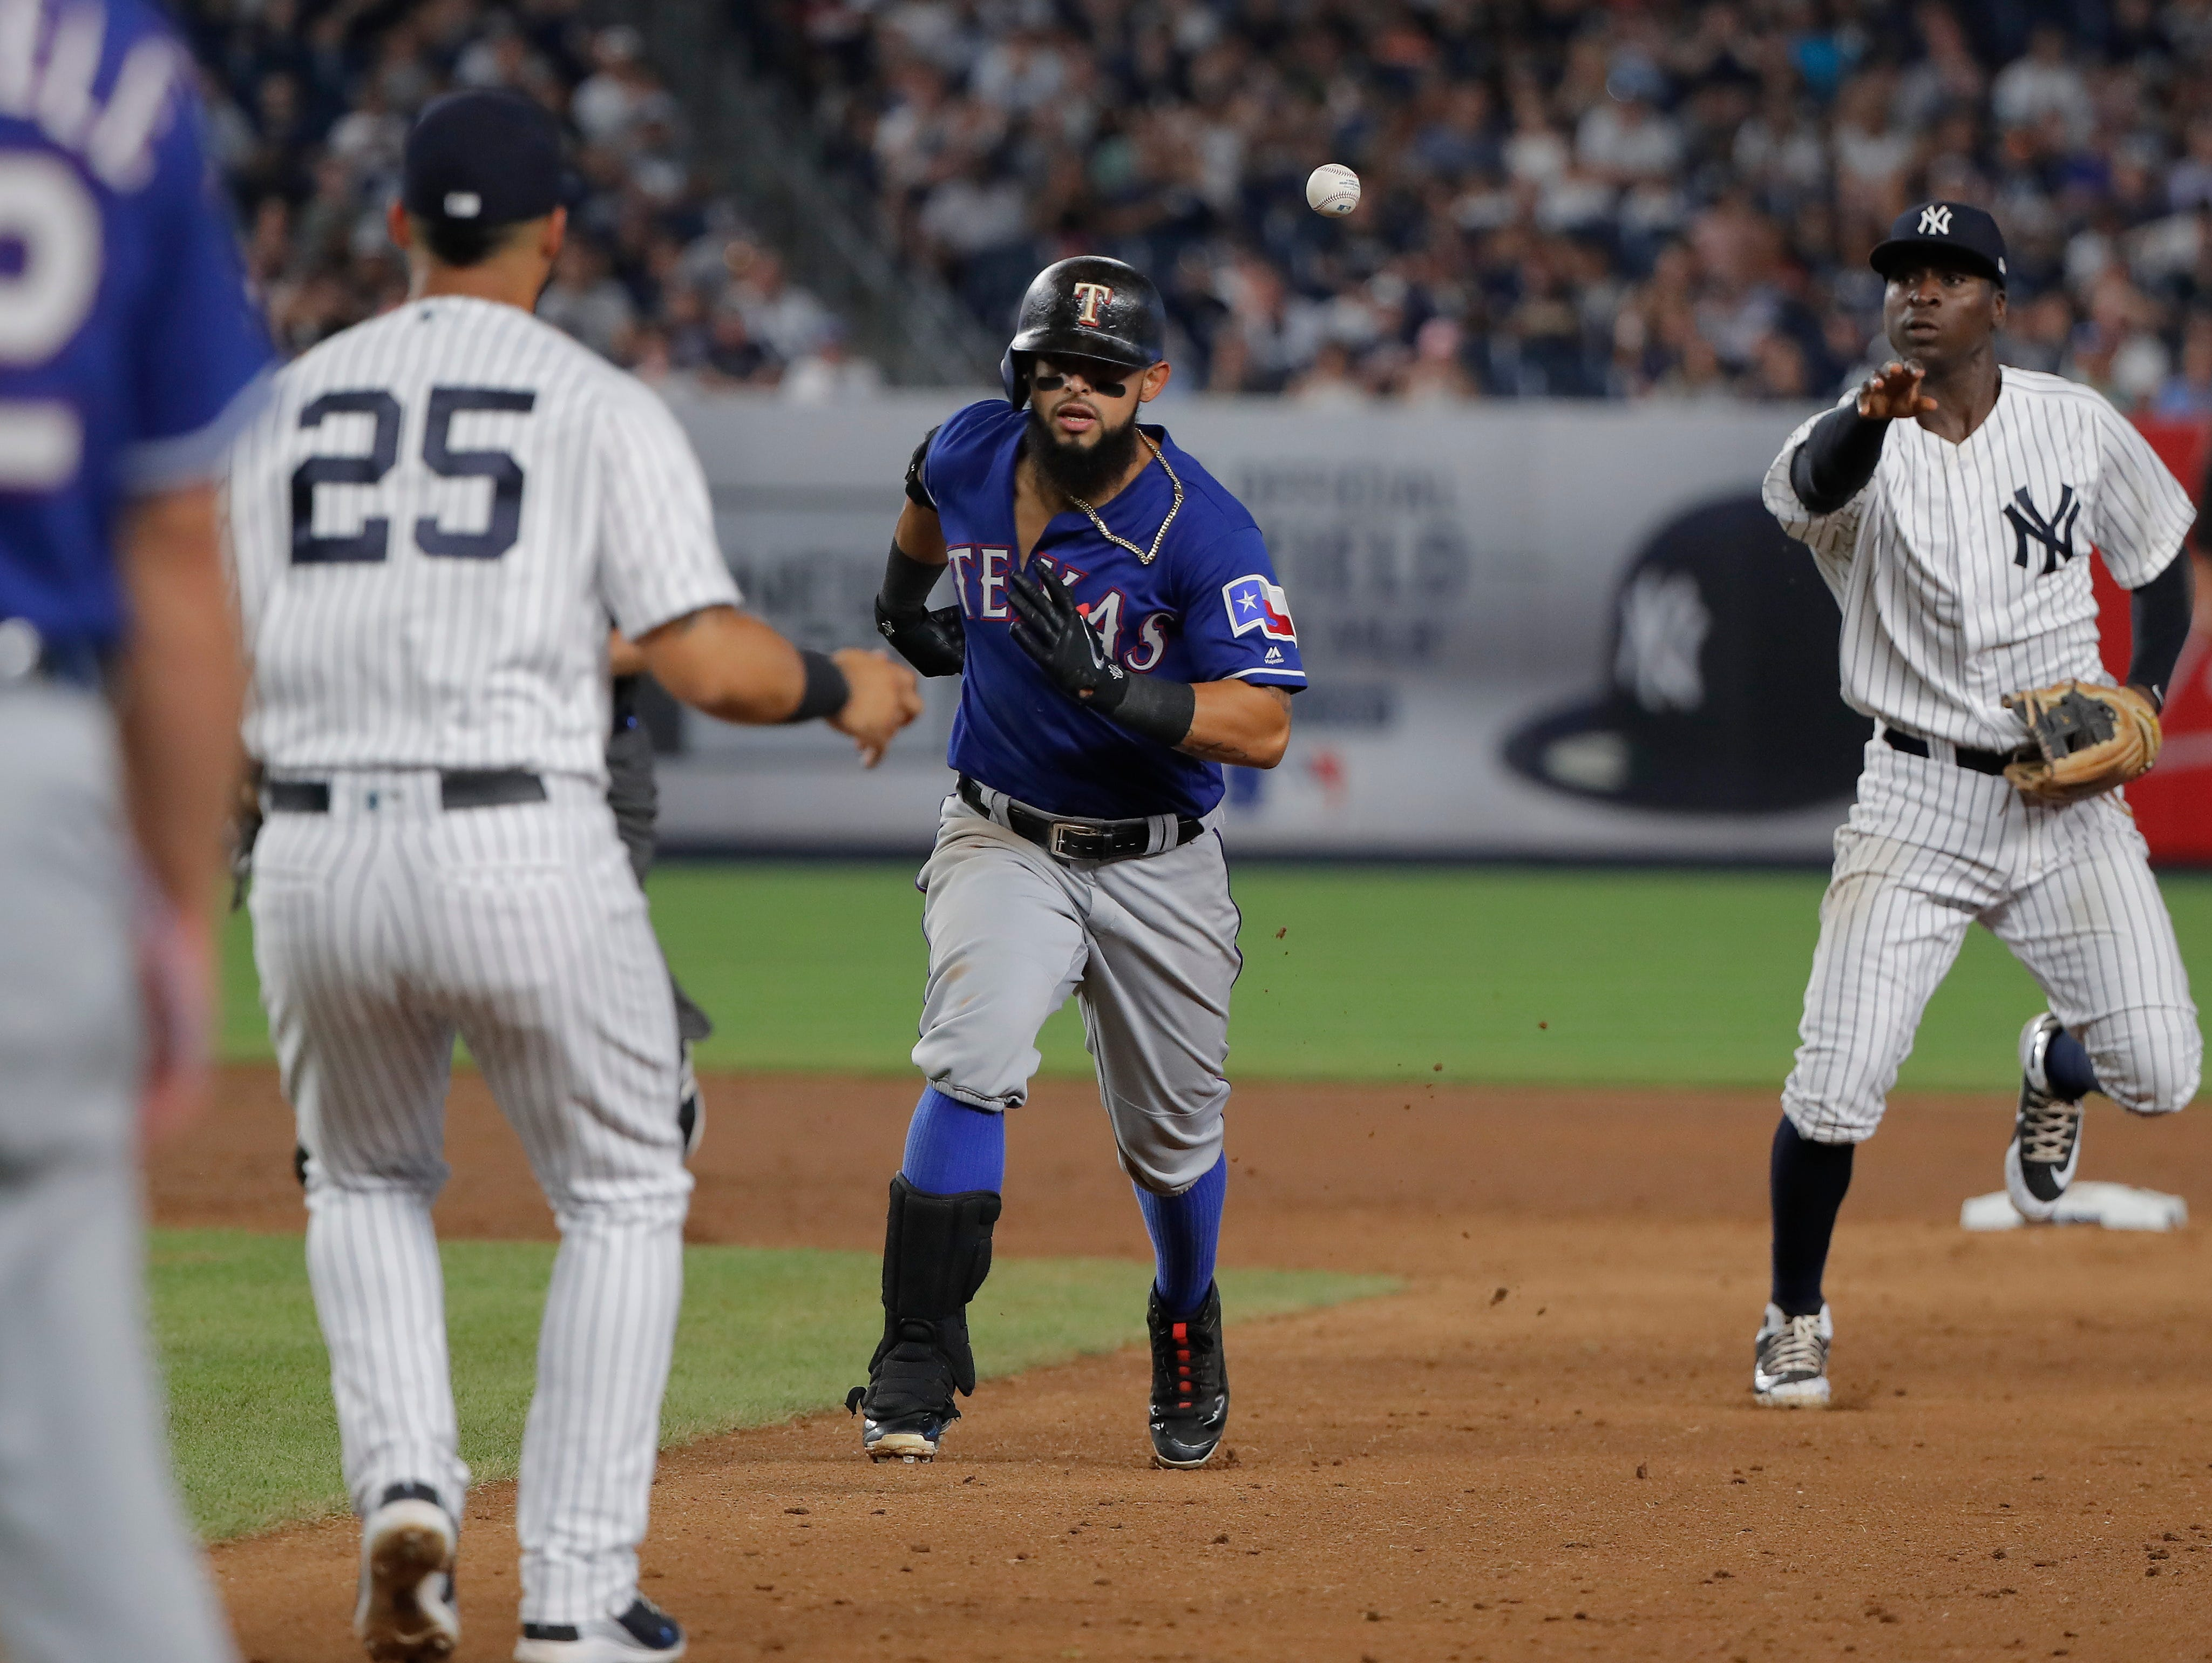 Texas Rangers' Rougned Odor, center, is caught in a rundown as New York Yankees shortstop Didi Gregorius, right, throws to second baseman Gleyber Torres (25) during the sixth inning of a baseball game, Friday, Aug. 10, 2018, in New York. Gregorius made an error on the throw and Odor advanced to second base on the play.